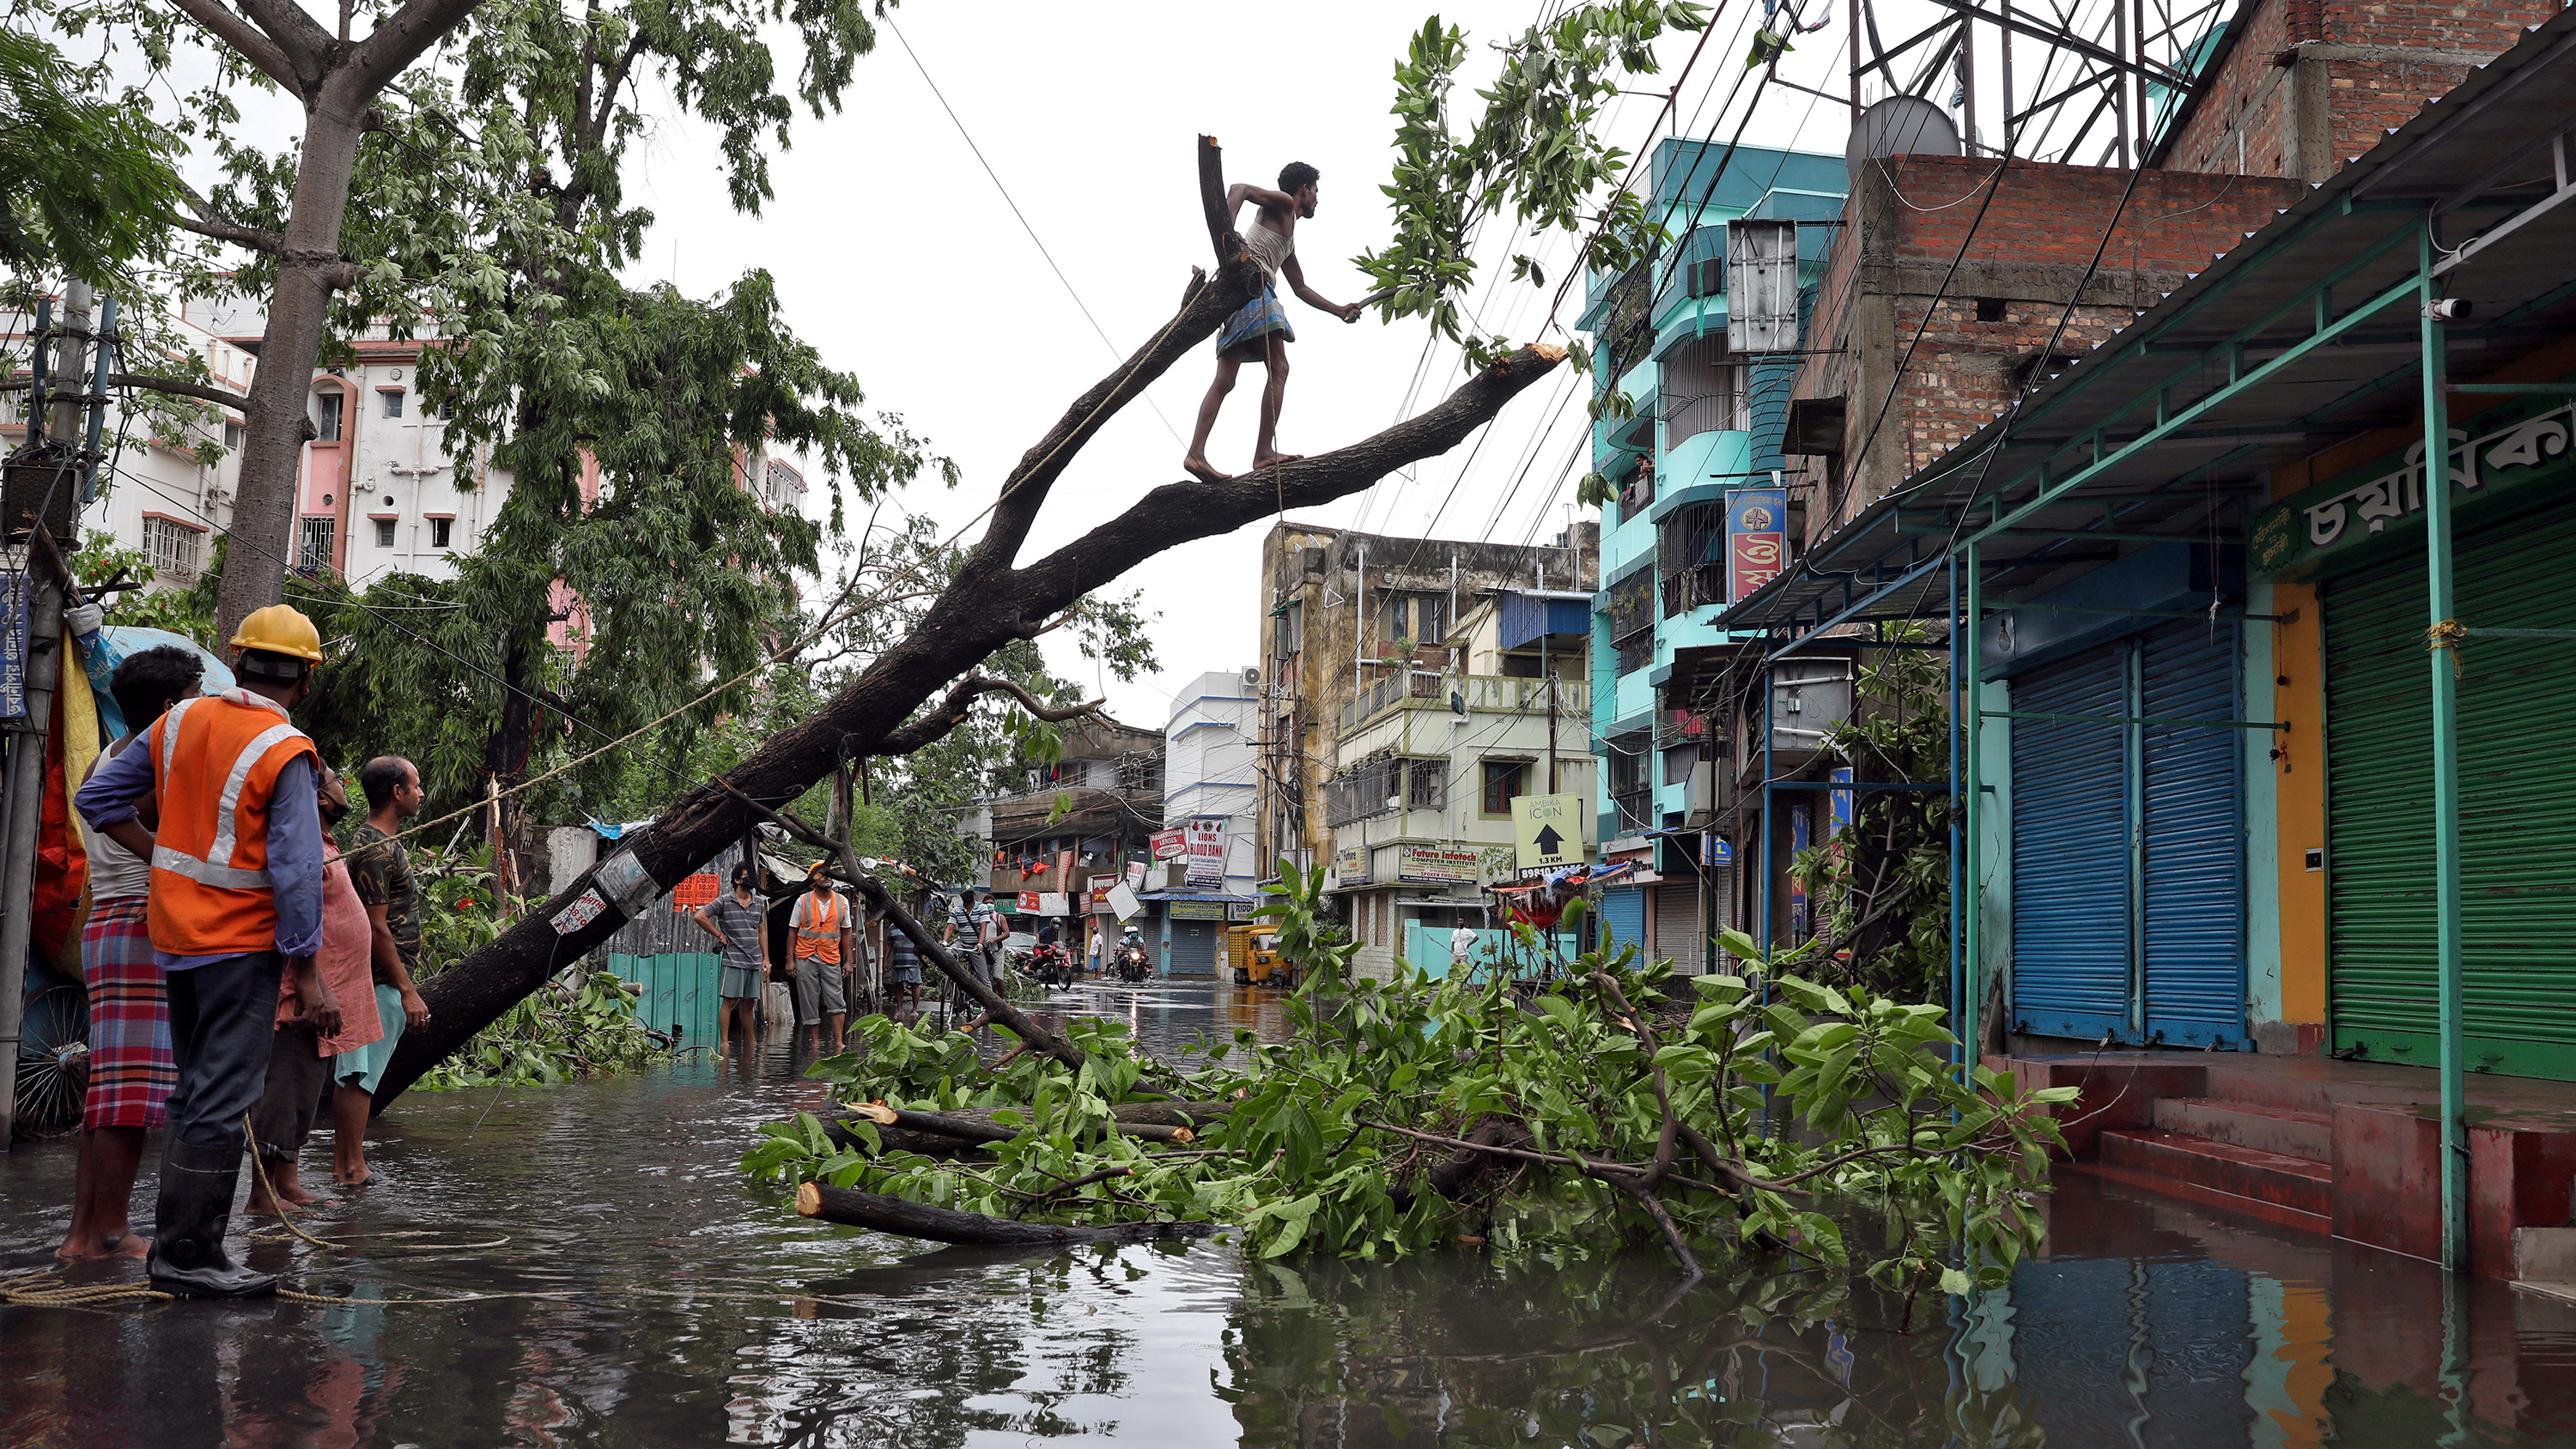 The photo shows a man walking on a limb of a downed tree susopended over a flooded street while a worker in an orange vest looks on.